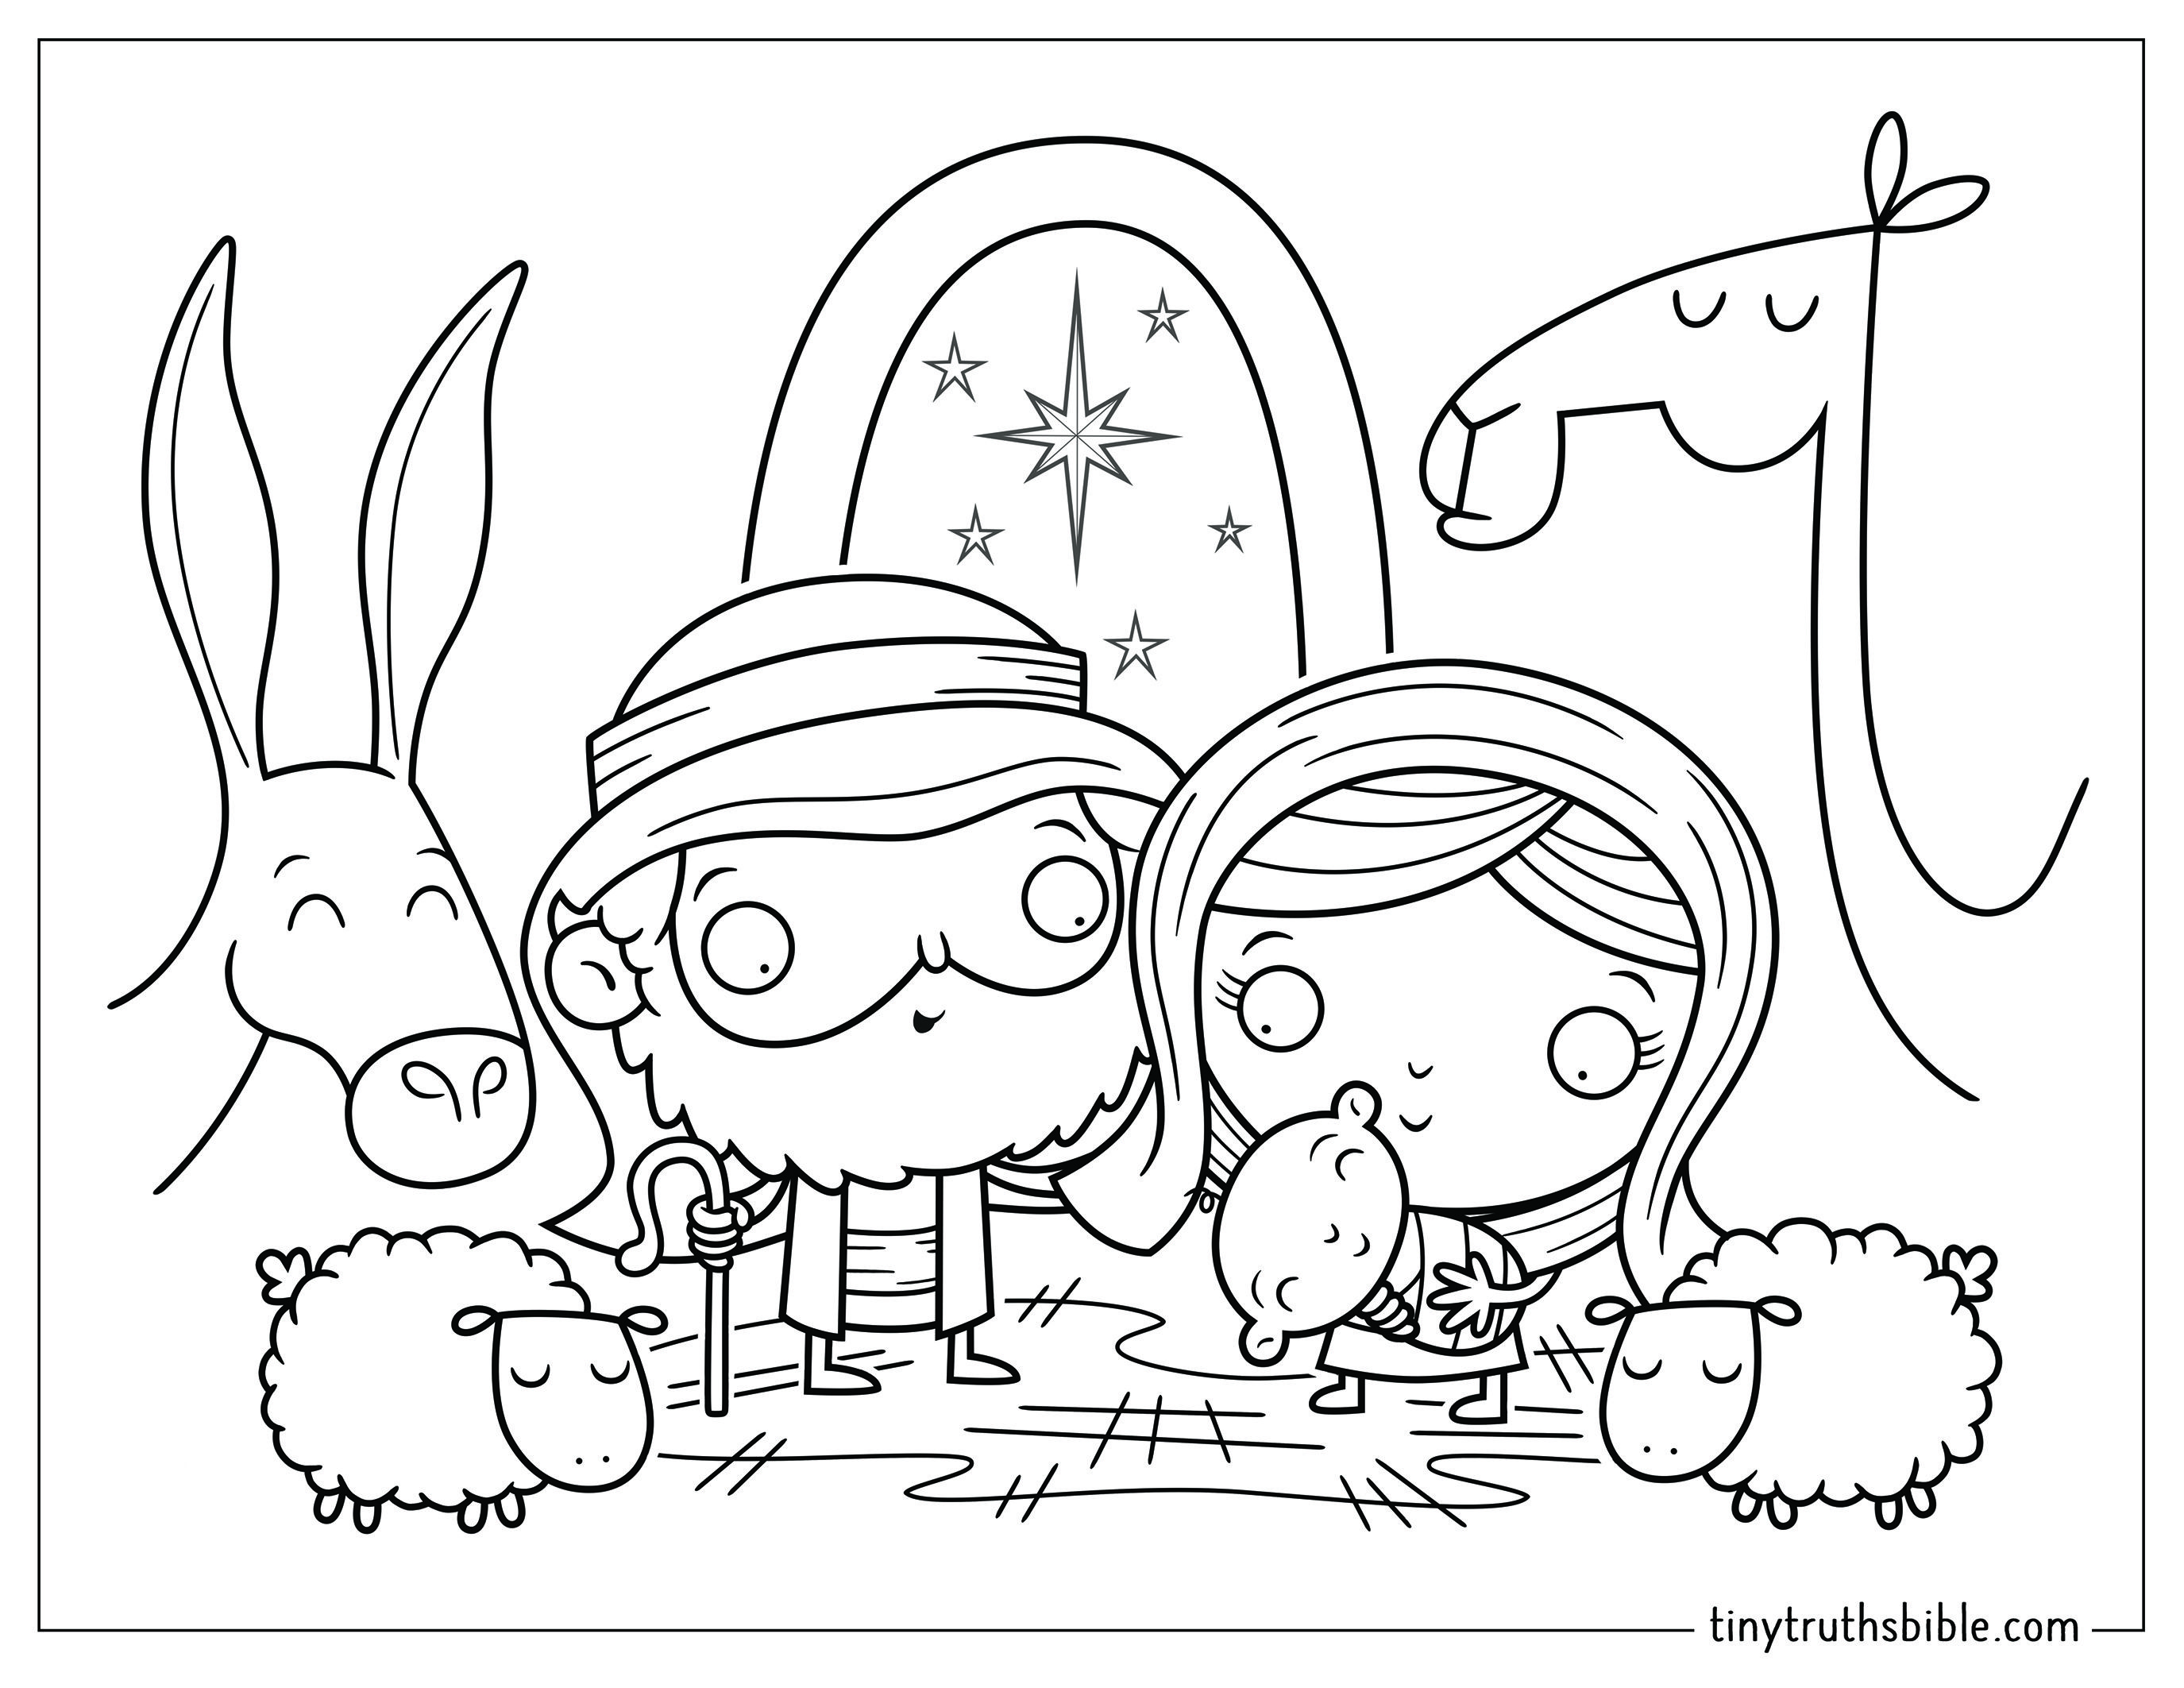 Nativity Scene From The Tiny Truths Illustrated Bible